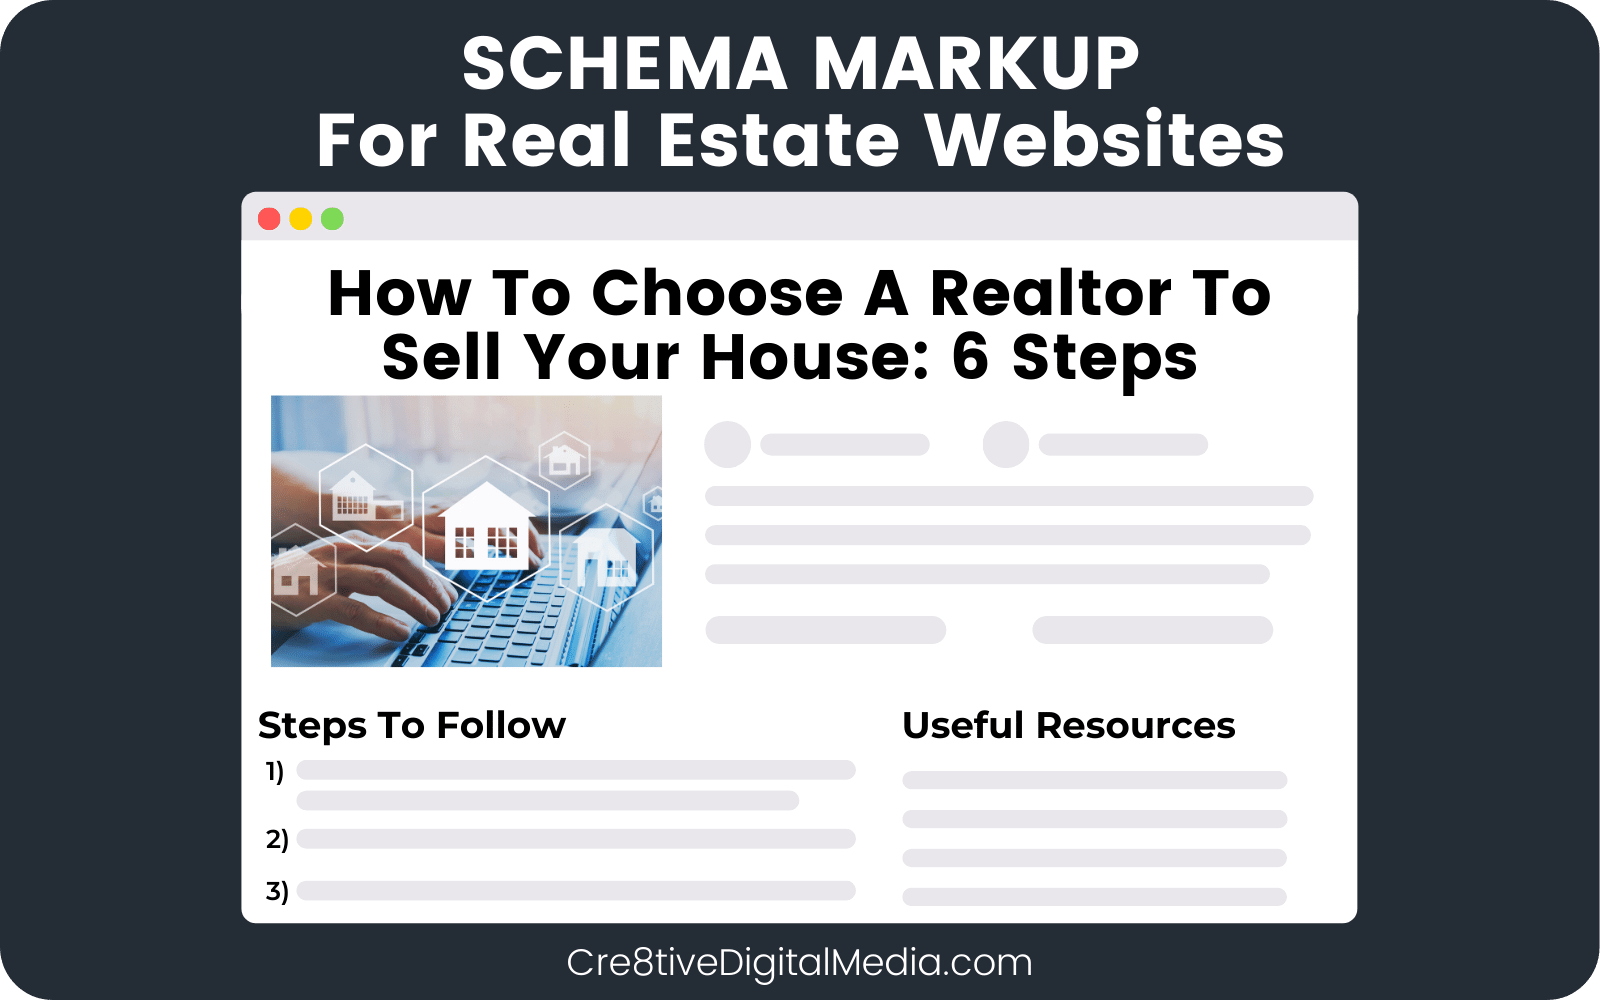 Blog Post: How To Choose A Realtor To Sell Your House: 6 Steps